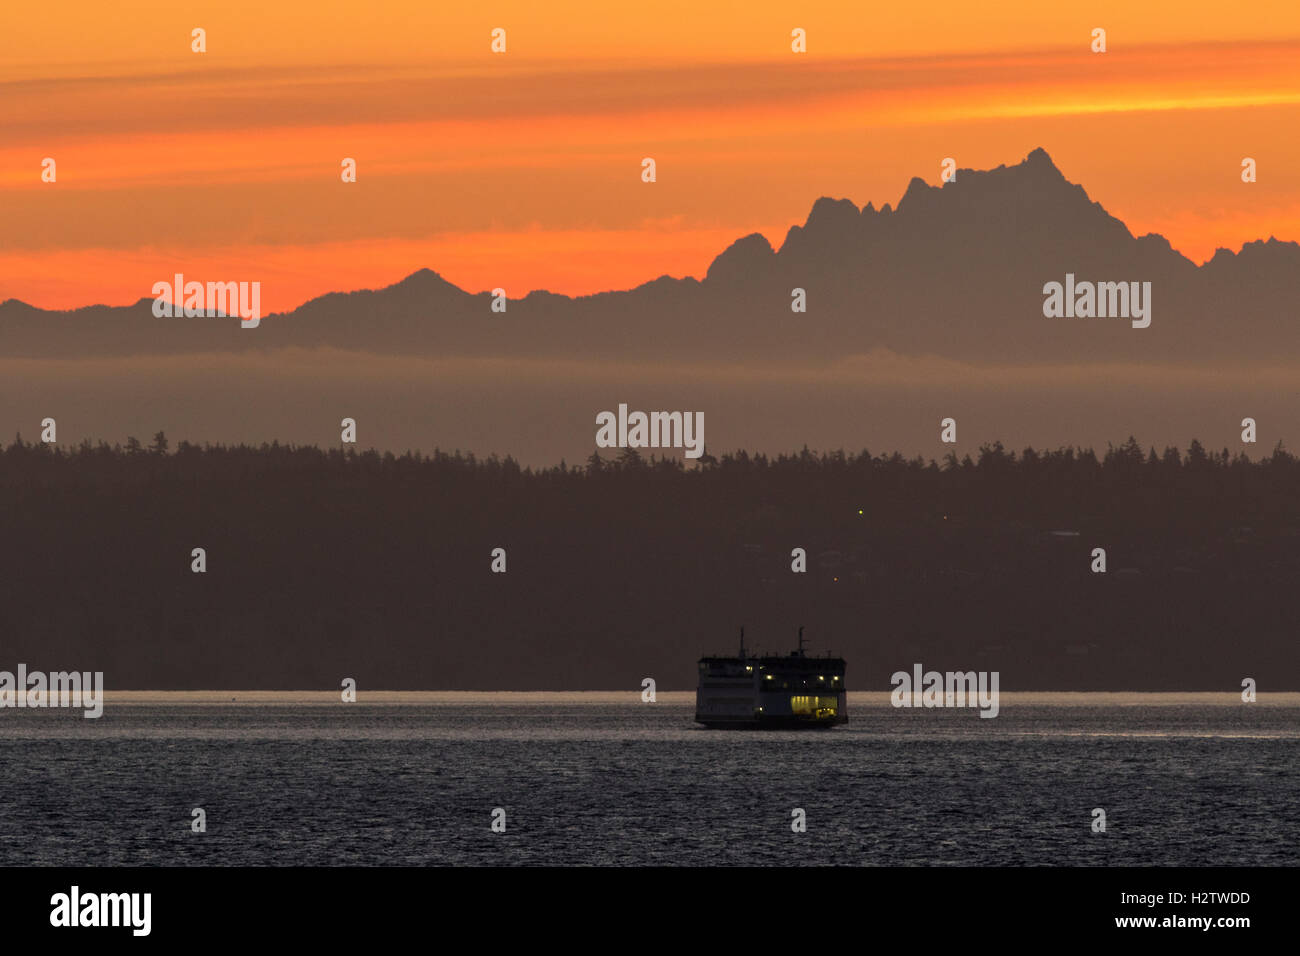 Puget Sound ferry at sunrise with Cascade mountains in background. Washington State ferries. - Stock Image